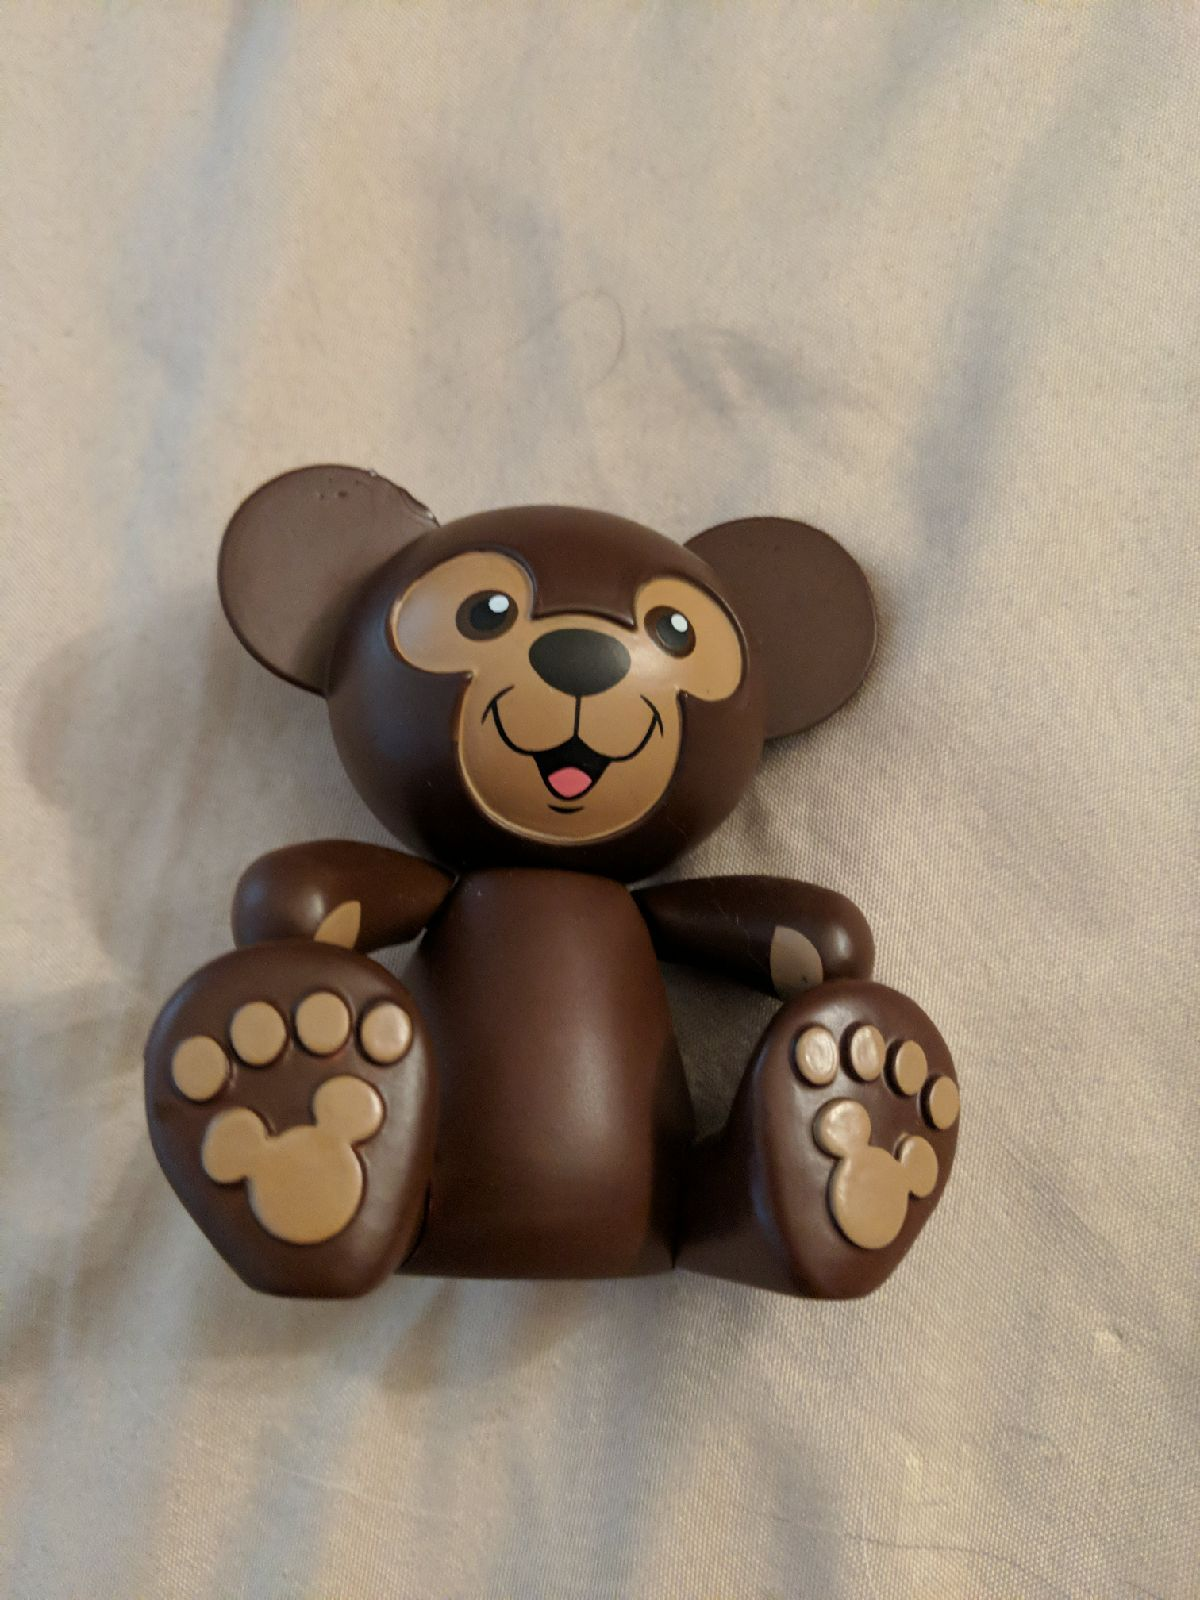 Disney Duffy the Disney Bear Vinylmation with slight